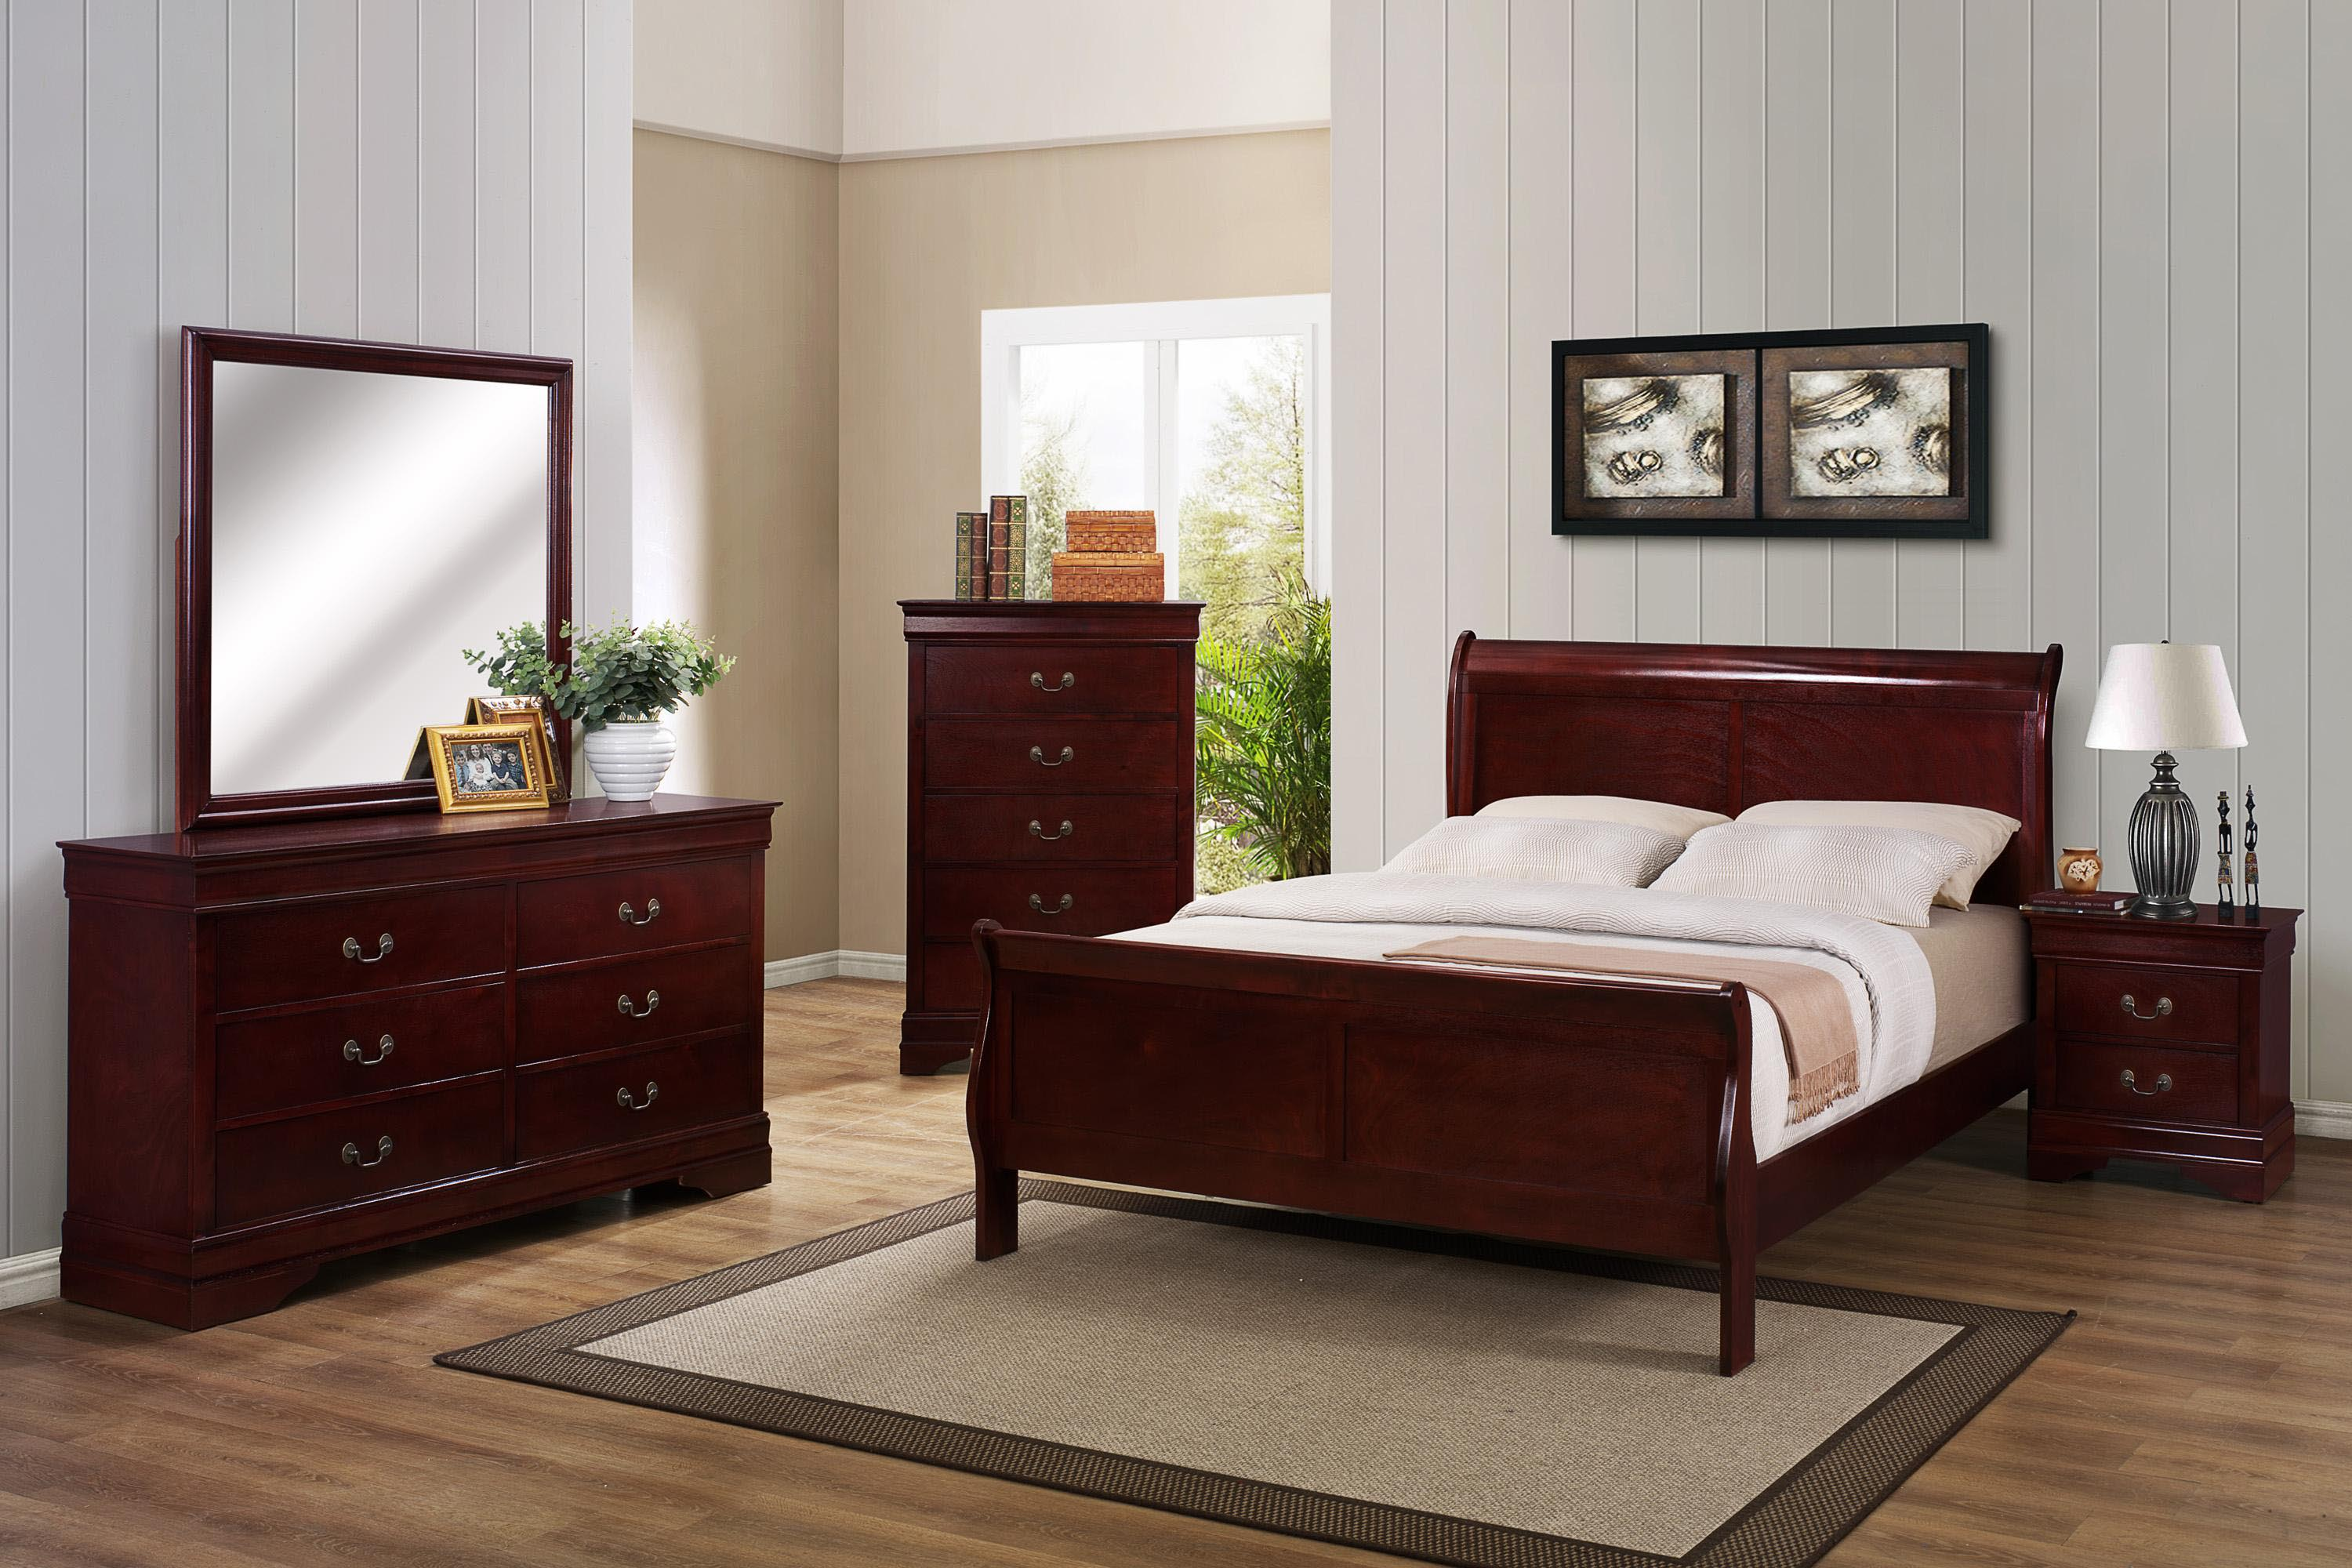 Mission Bedroom Furniture Rooms To Go | Best Decor Things